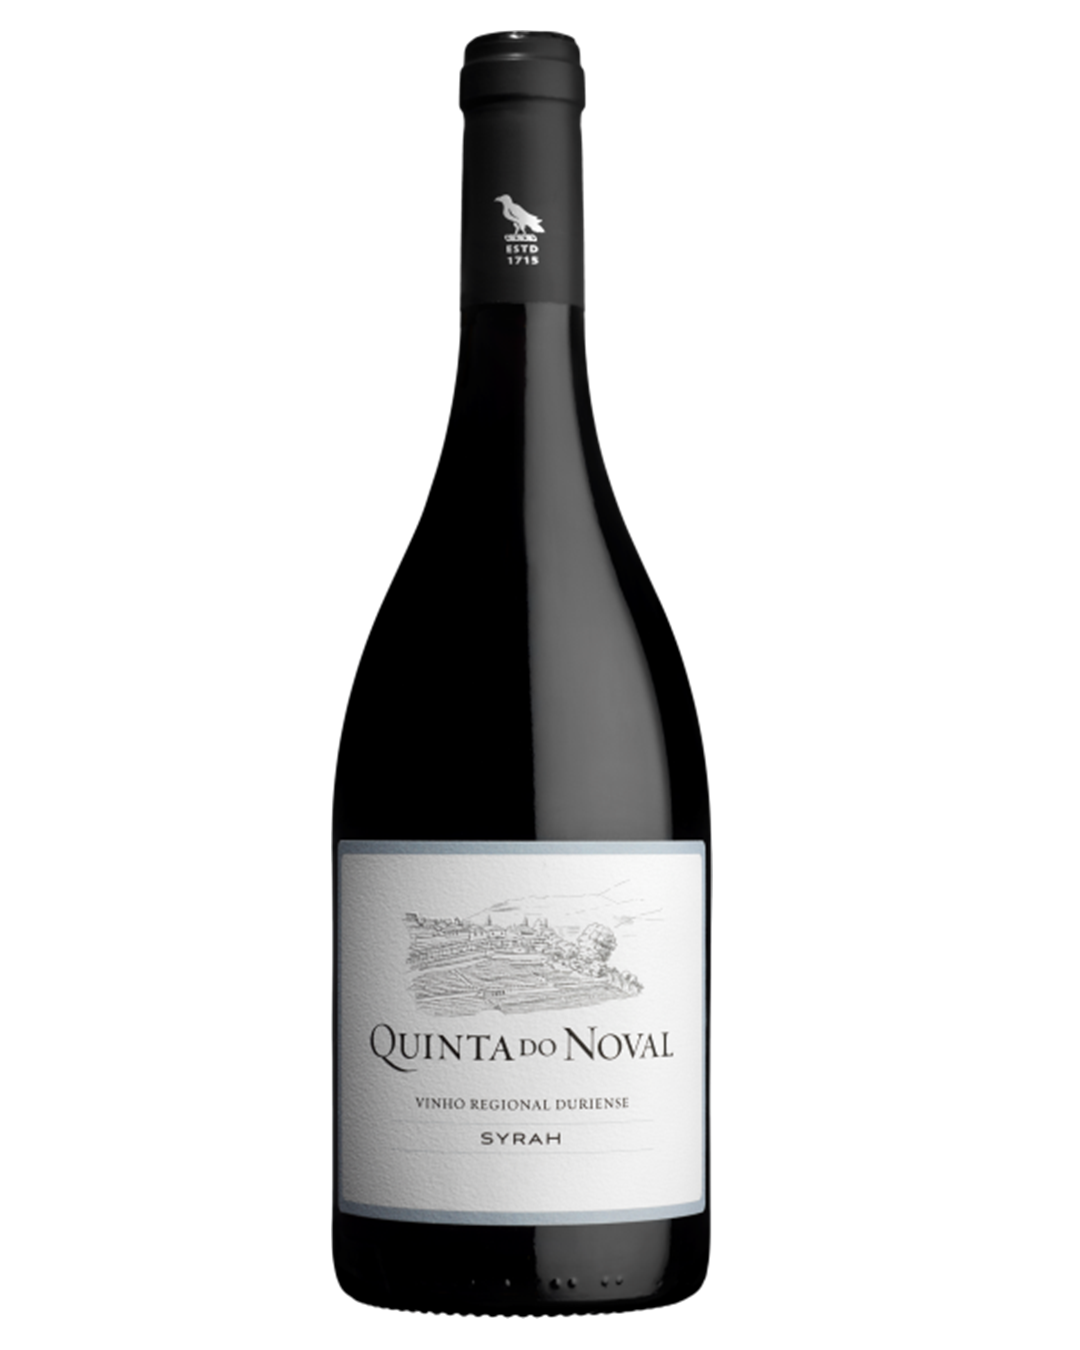 Quinta do Noval Syrah 2017